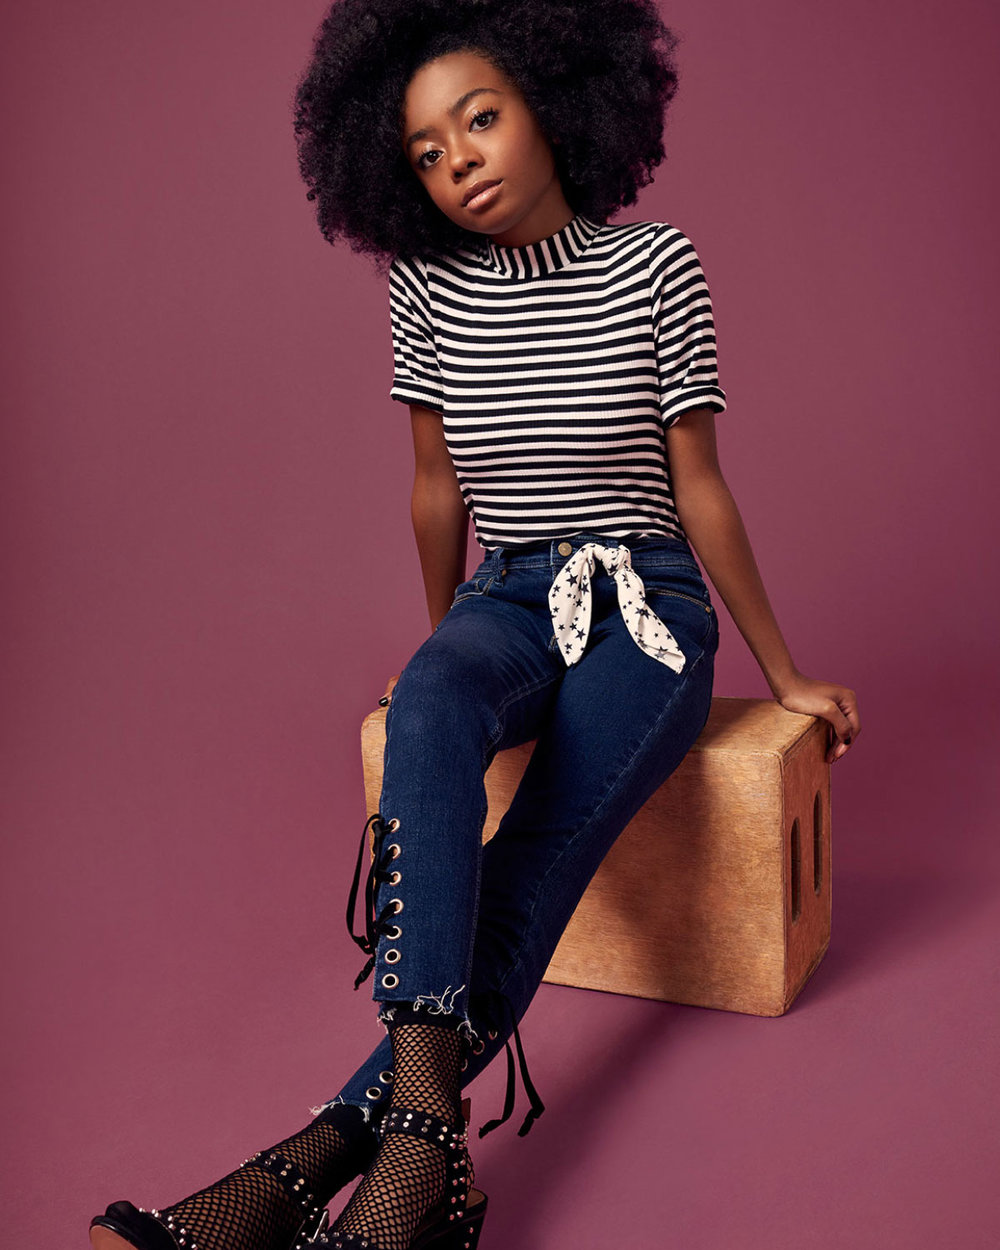 Skai_Lookbook_Images22.jpg